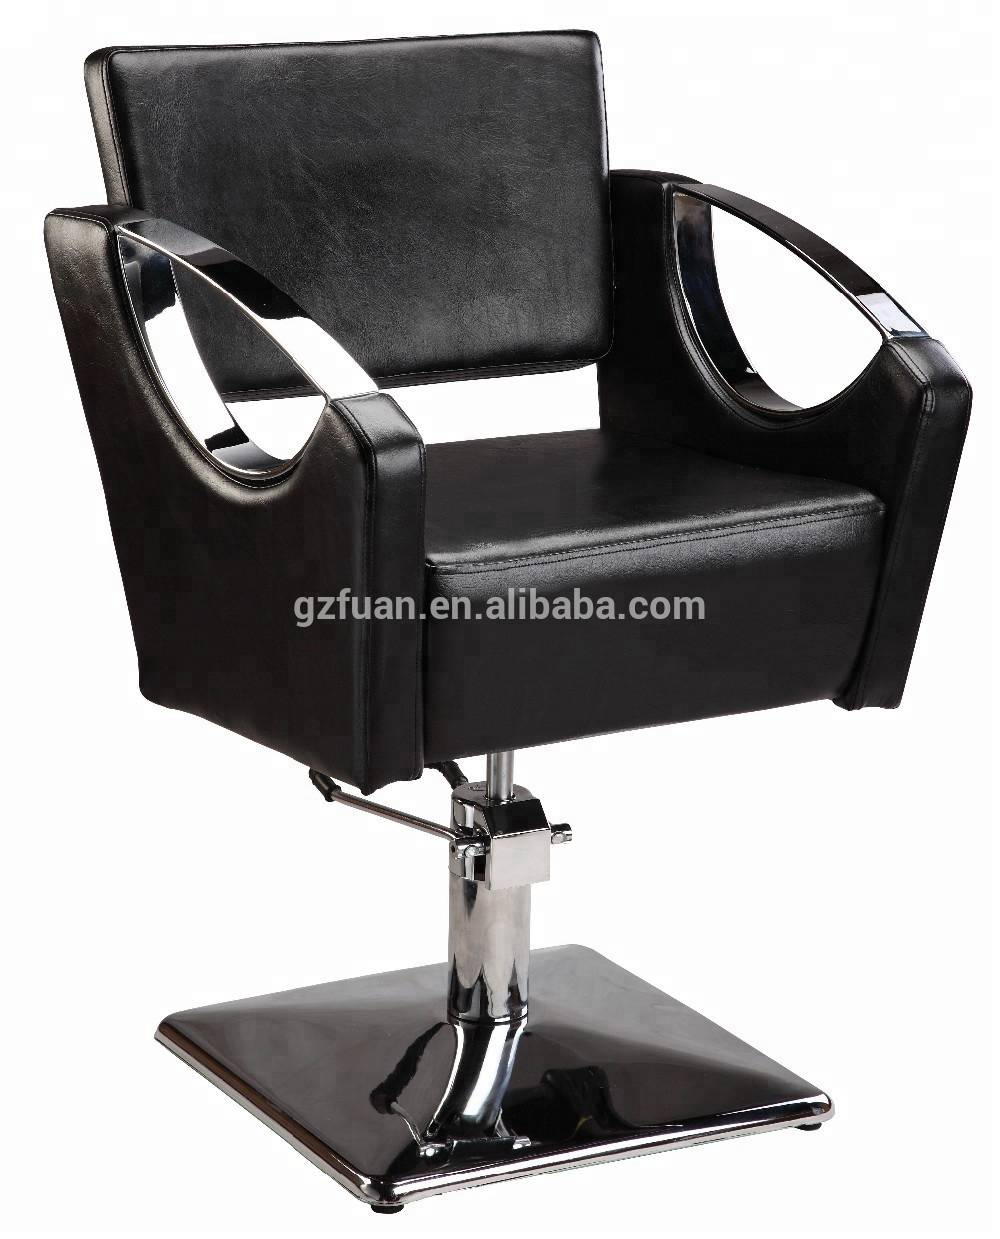 Hot sale synthetic leather hairdresser salon furniture cheap barber chair hair salon styling chair Featured Image